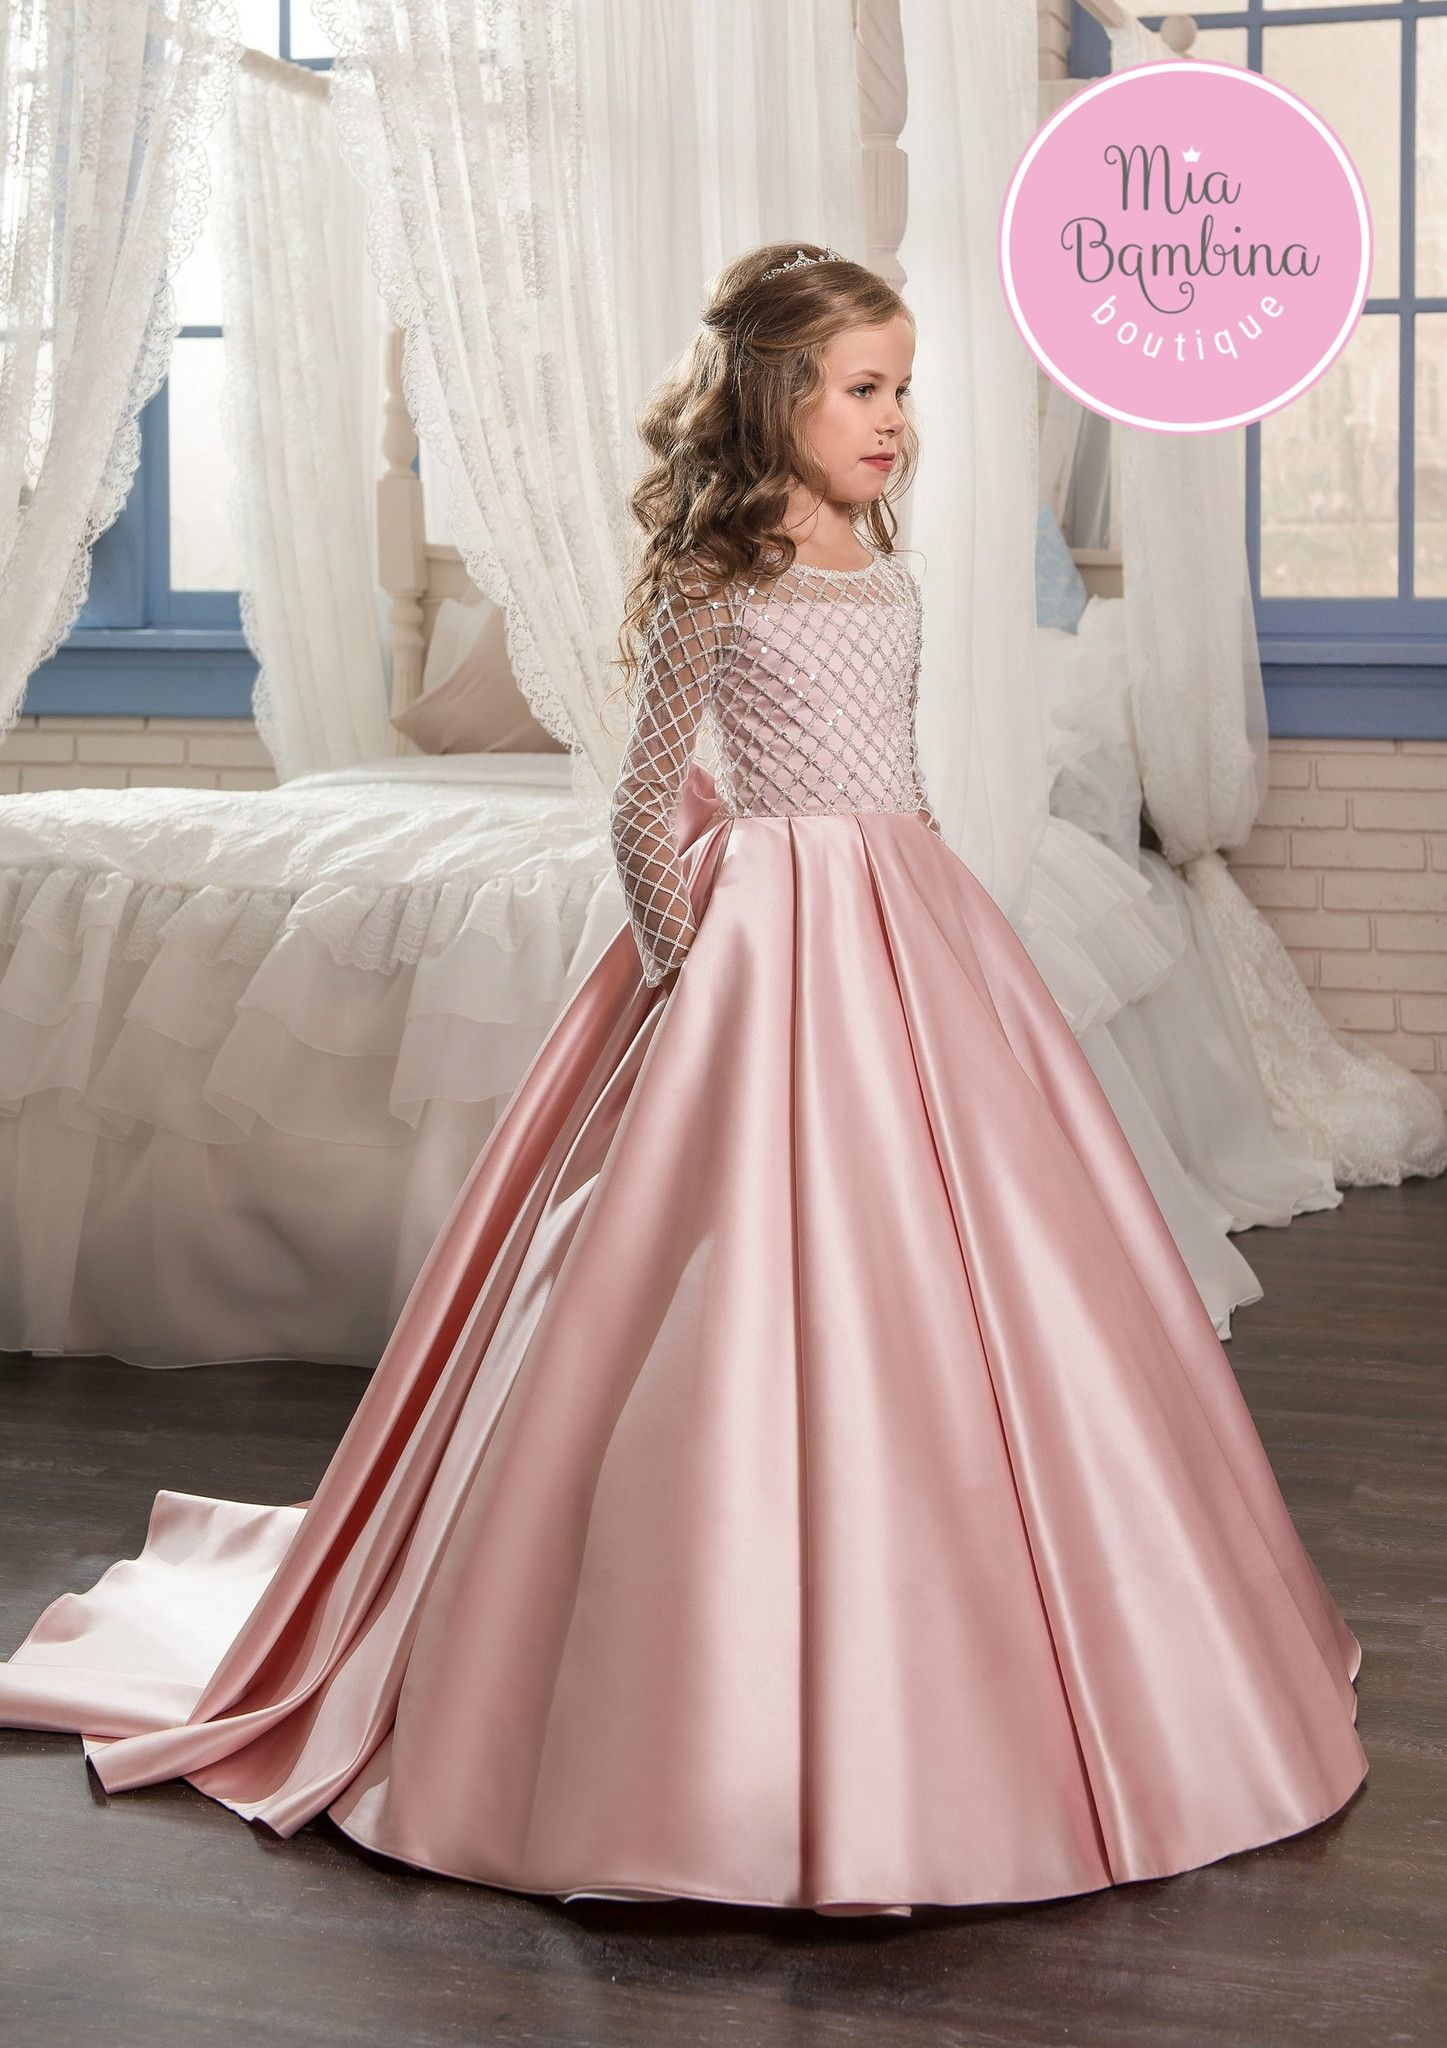 865a9278f64f Flower Girl Dresses Shop Toronto Flower Girl Dresses at Girls Dress ...